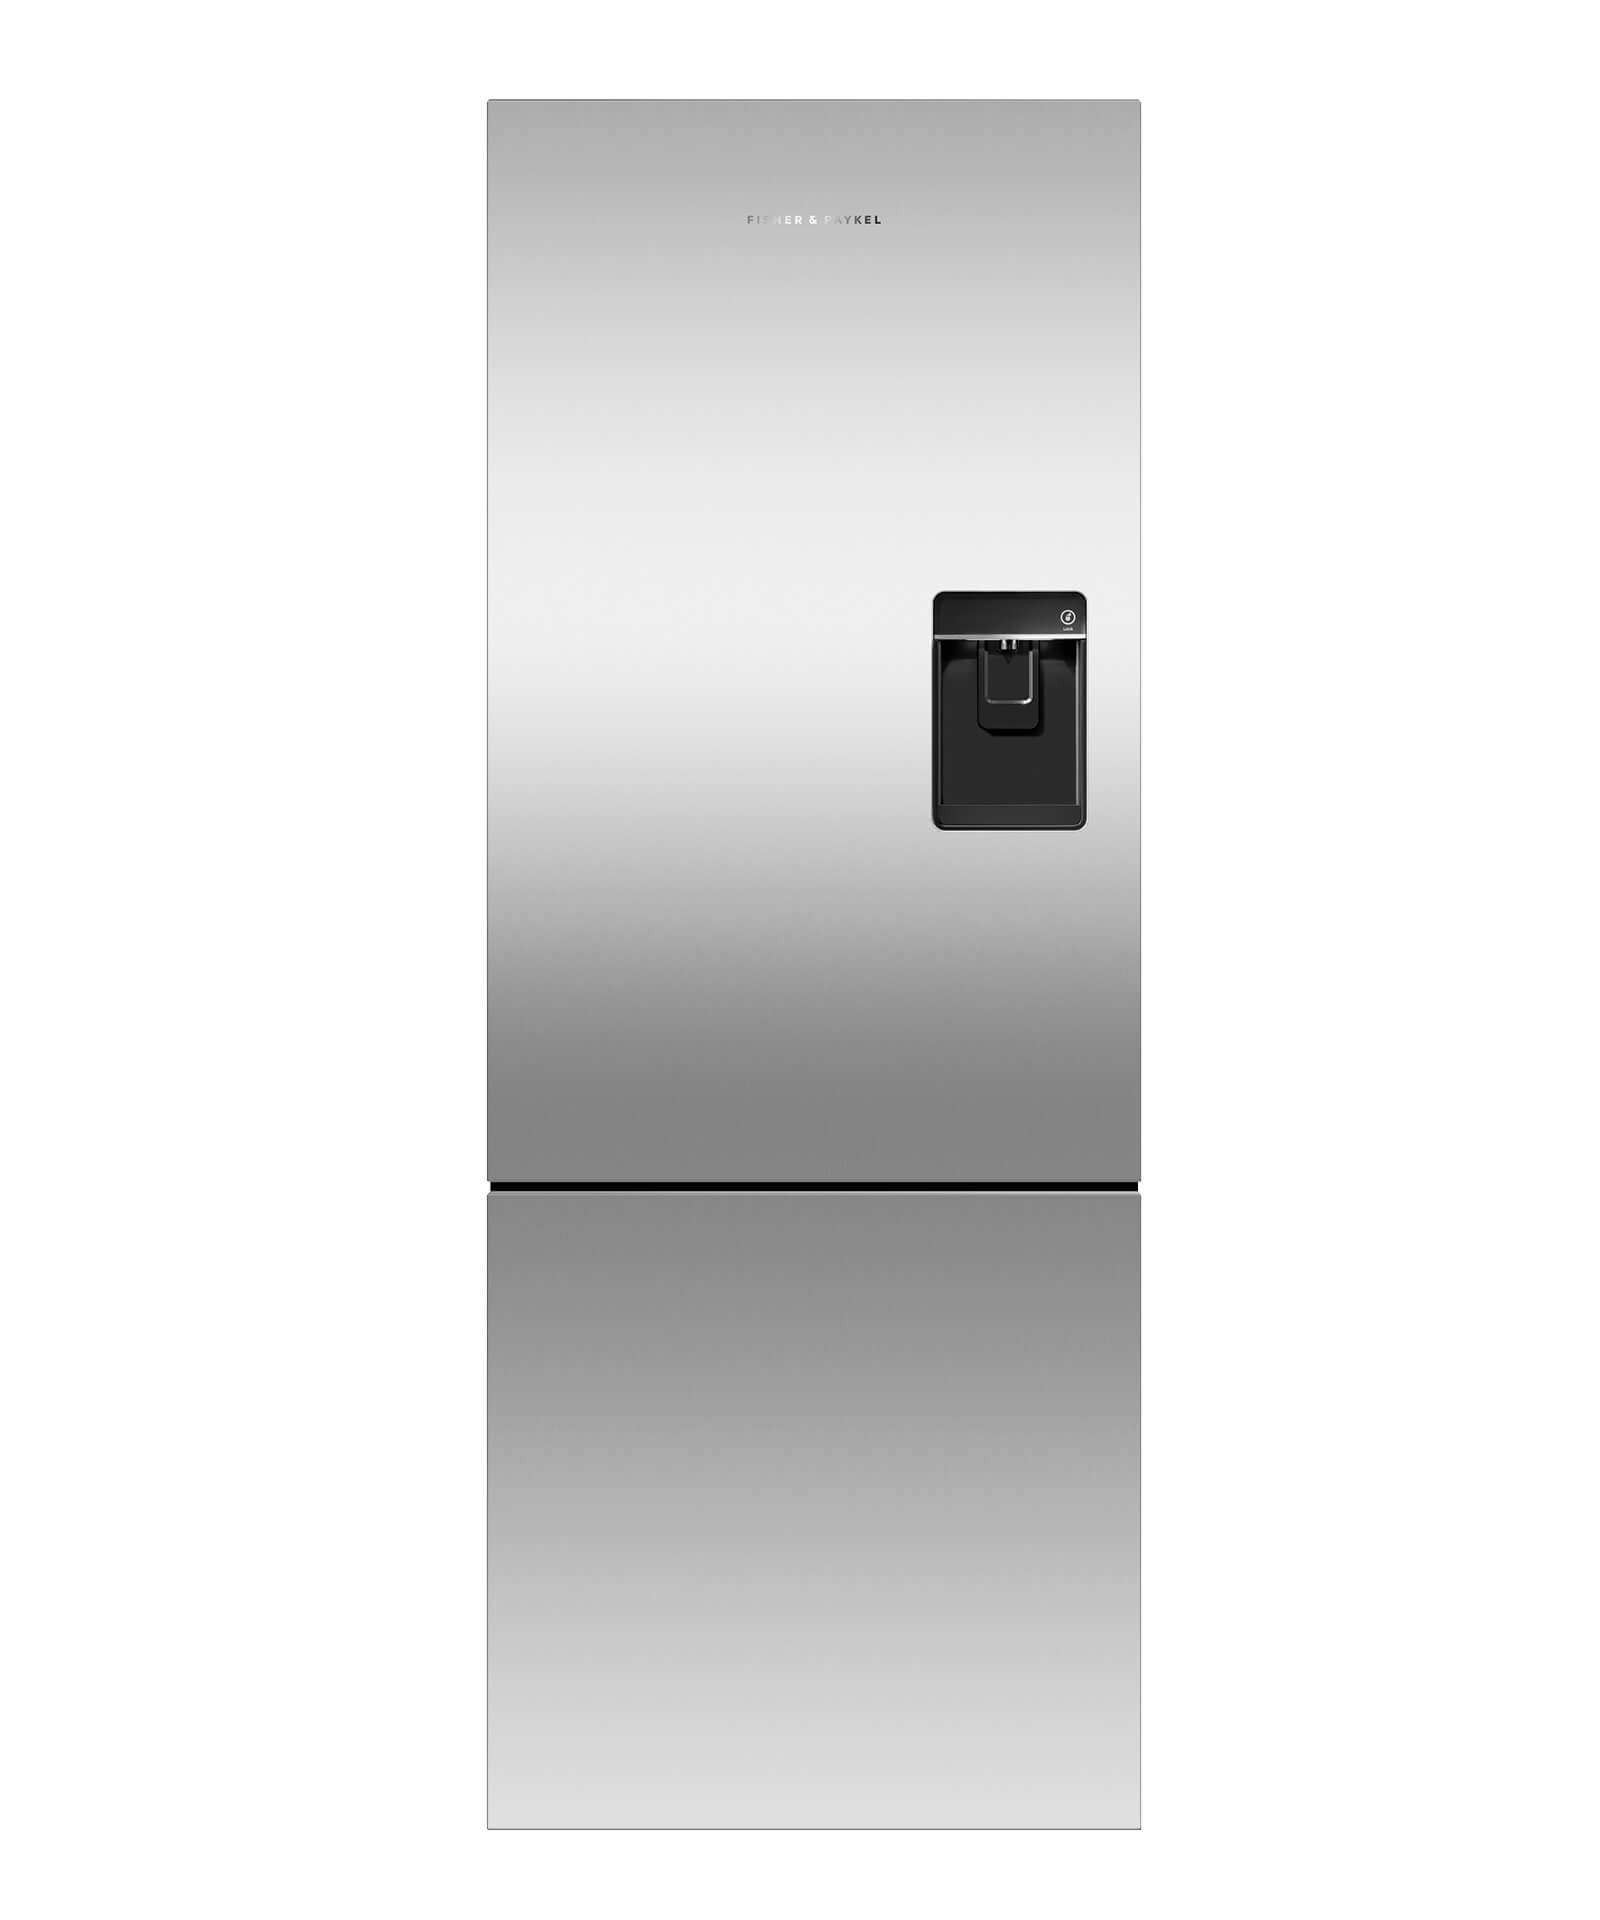 RF402BRPUX6 - ActiveSmart™ Fridge - 635mm Bottom Freezer with Ice & Water 360L - 25563